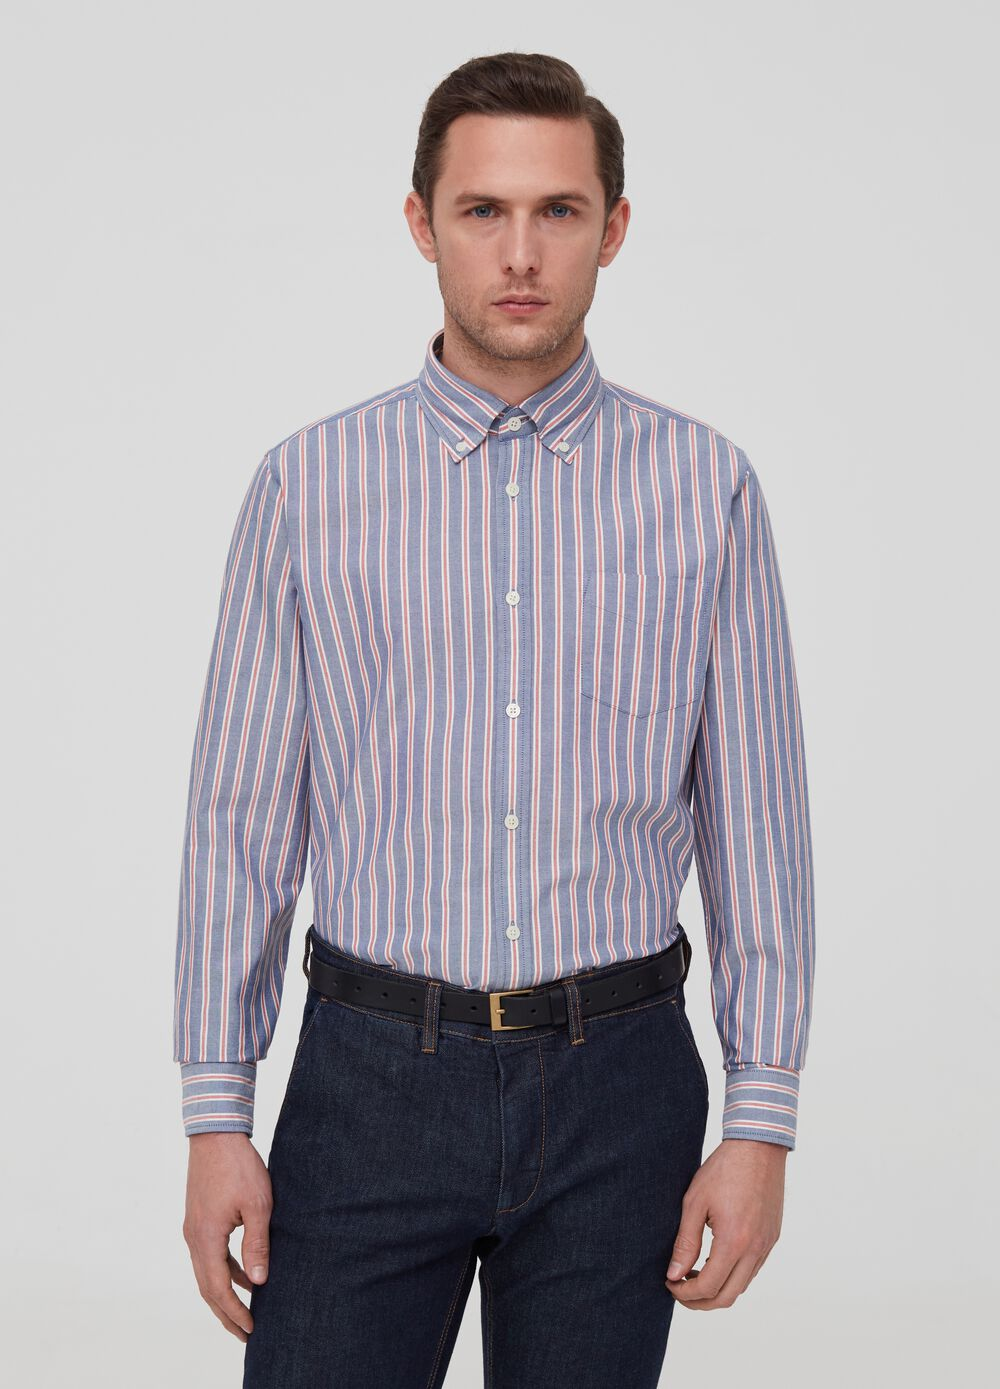 100% cotton shirt with button-down collar